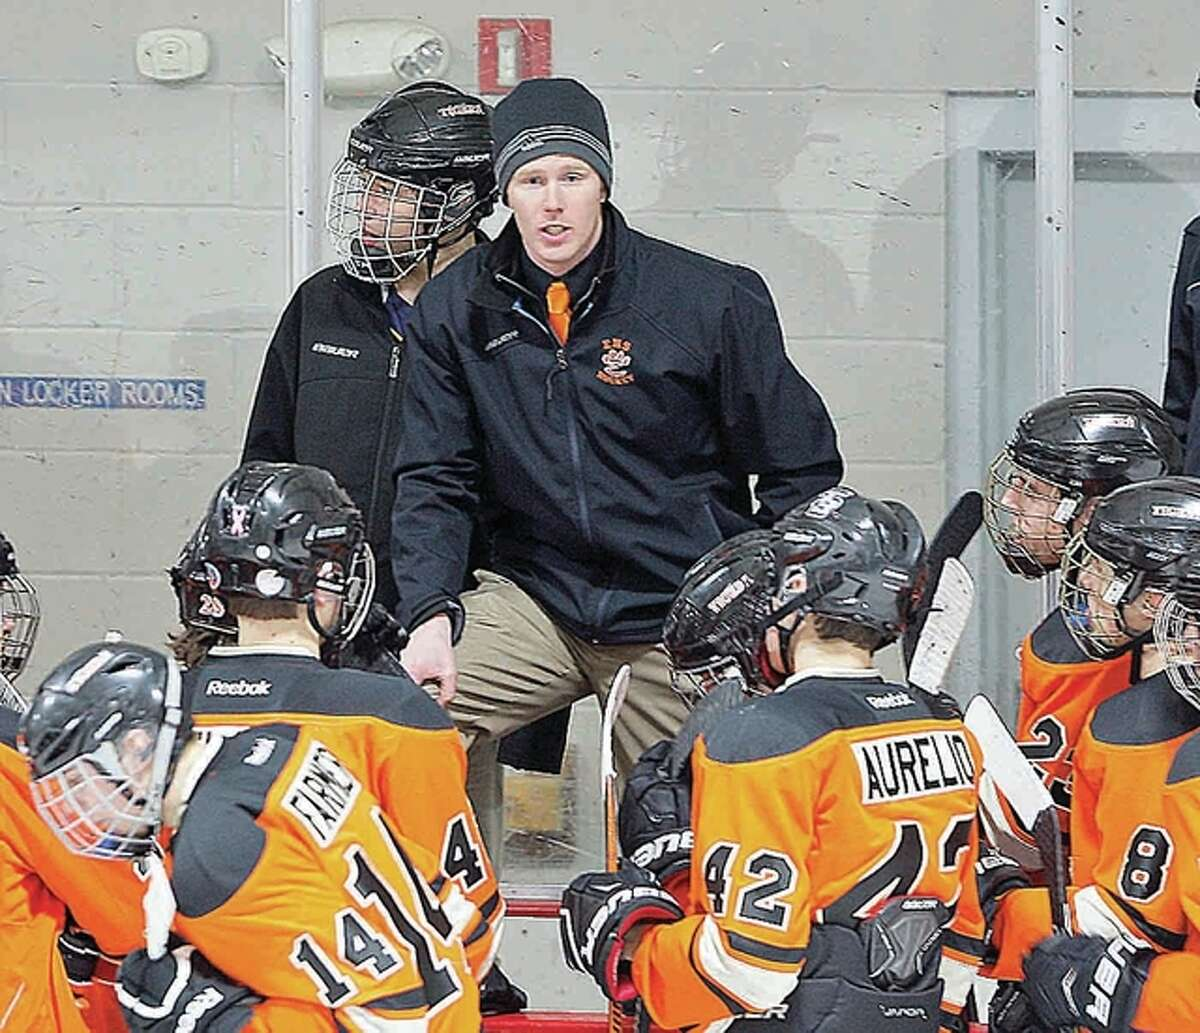 Edwardsville hockey coach Jason Walker's team dropped a 6-3 Mid-State Hockey Association decision to DeSmet Thursday night at the East Alton Ice Arena. Walker is shown addressing the Tigers during a previous game at East Alton.